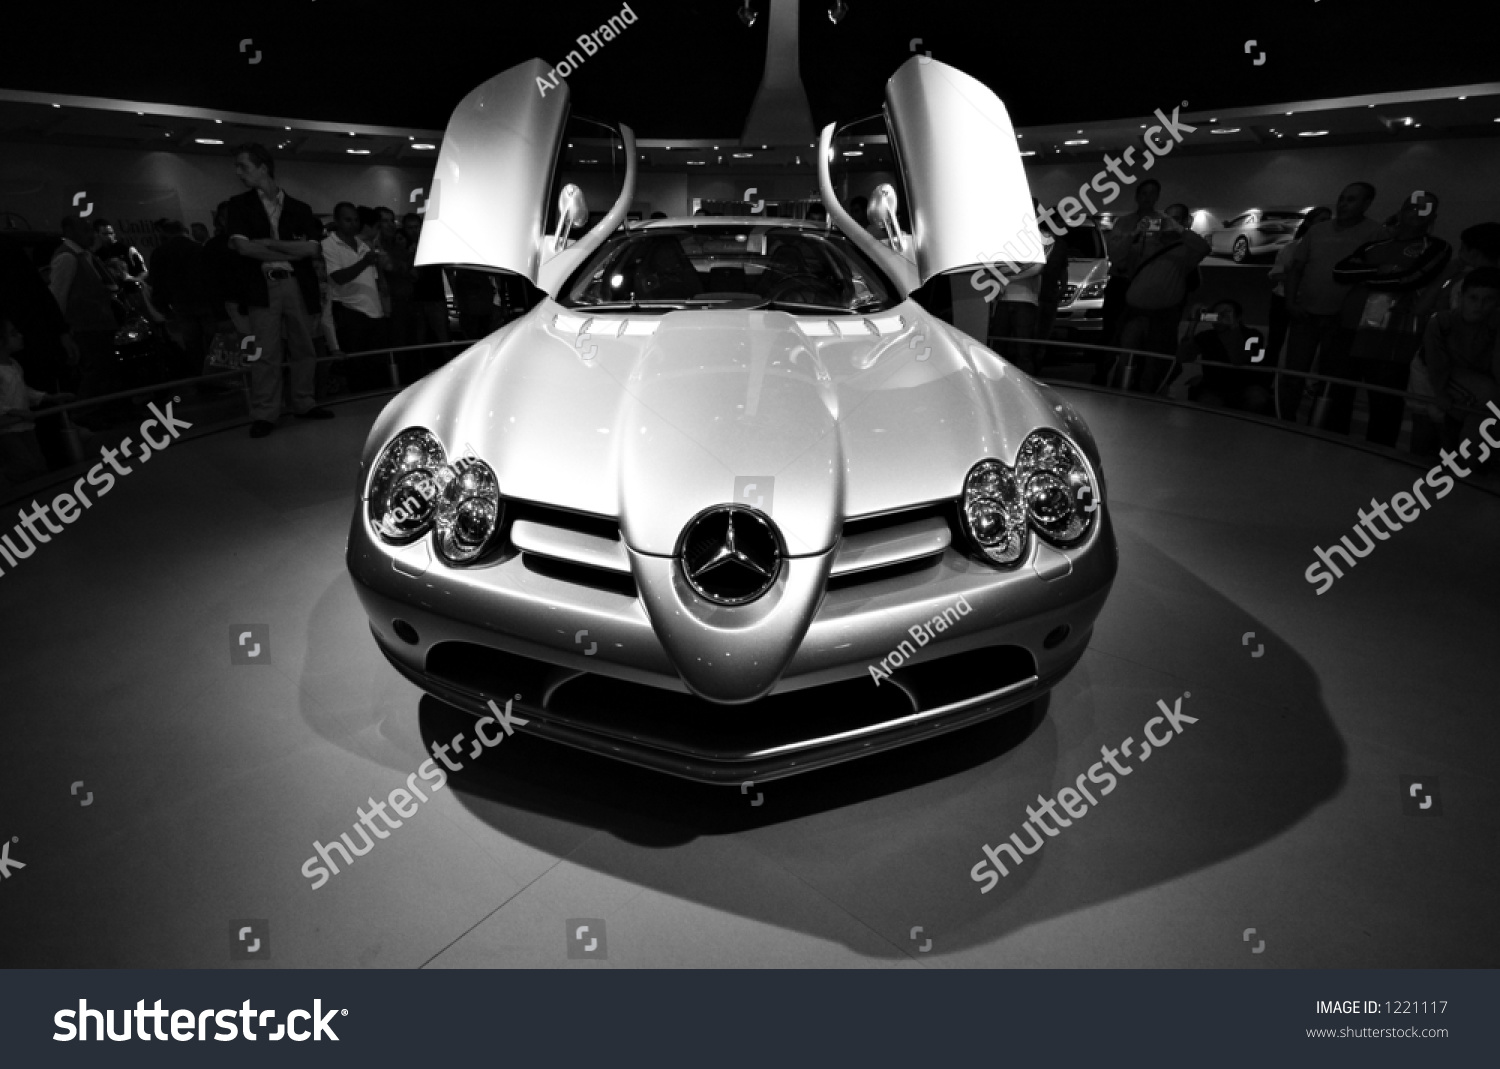 A Mercedes SLR top of the line sports car with seagull doors & Mercedes Slr Top Line Sports Car Stock Photo 1221117 - Shutterstock pezcame.com